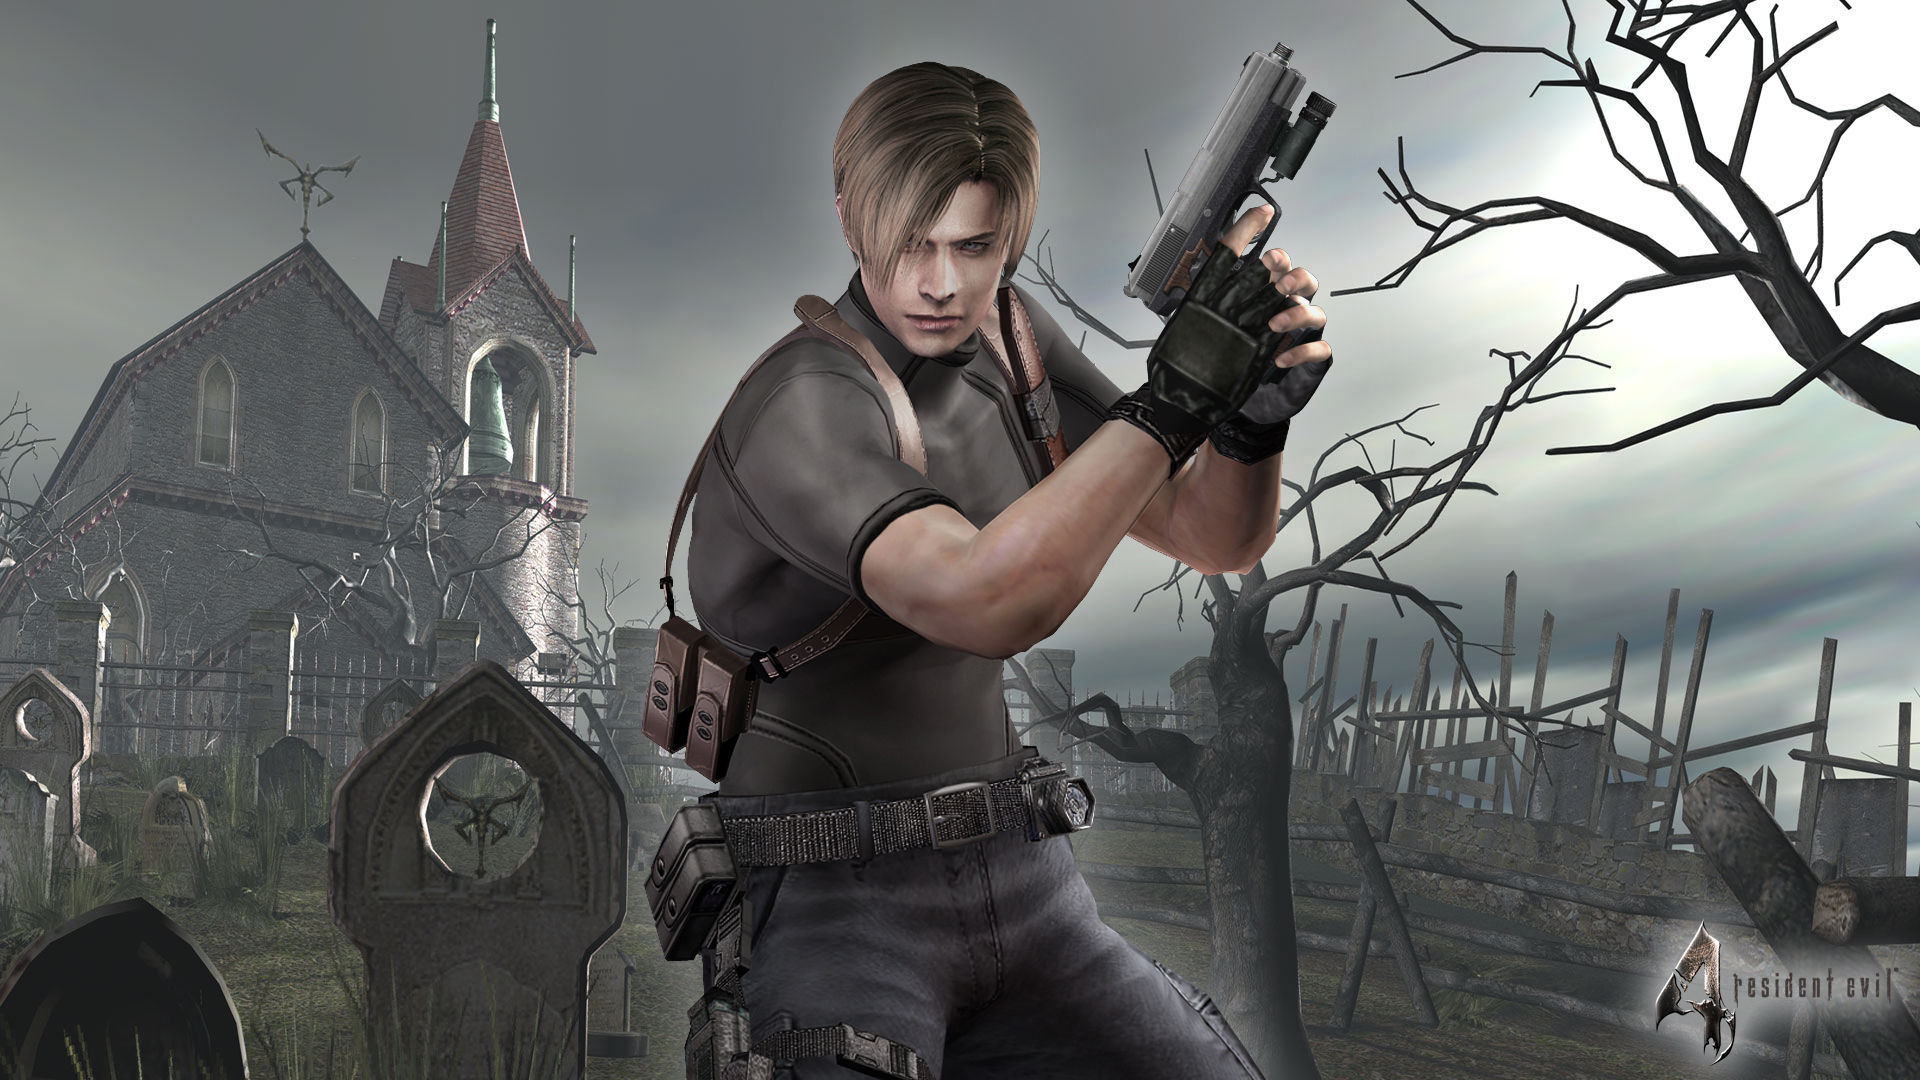 Residentevil4biohazard4artwork6